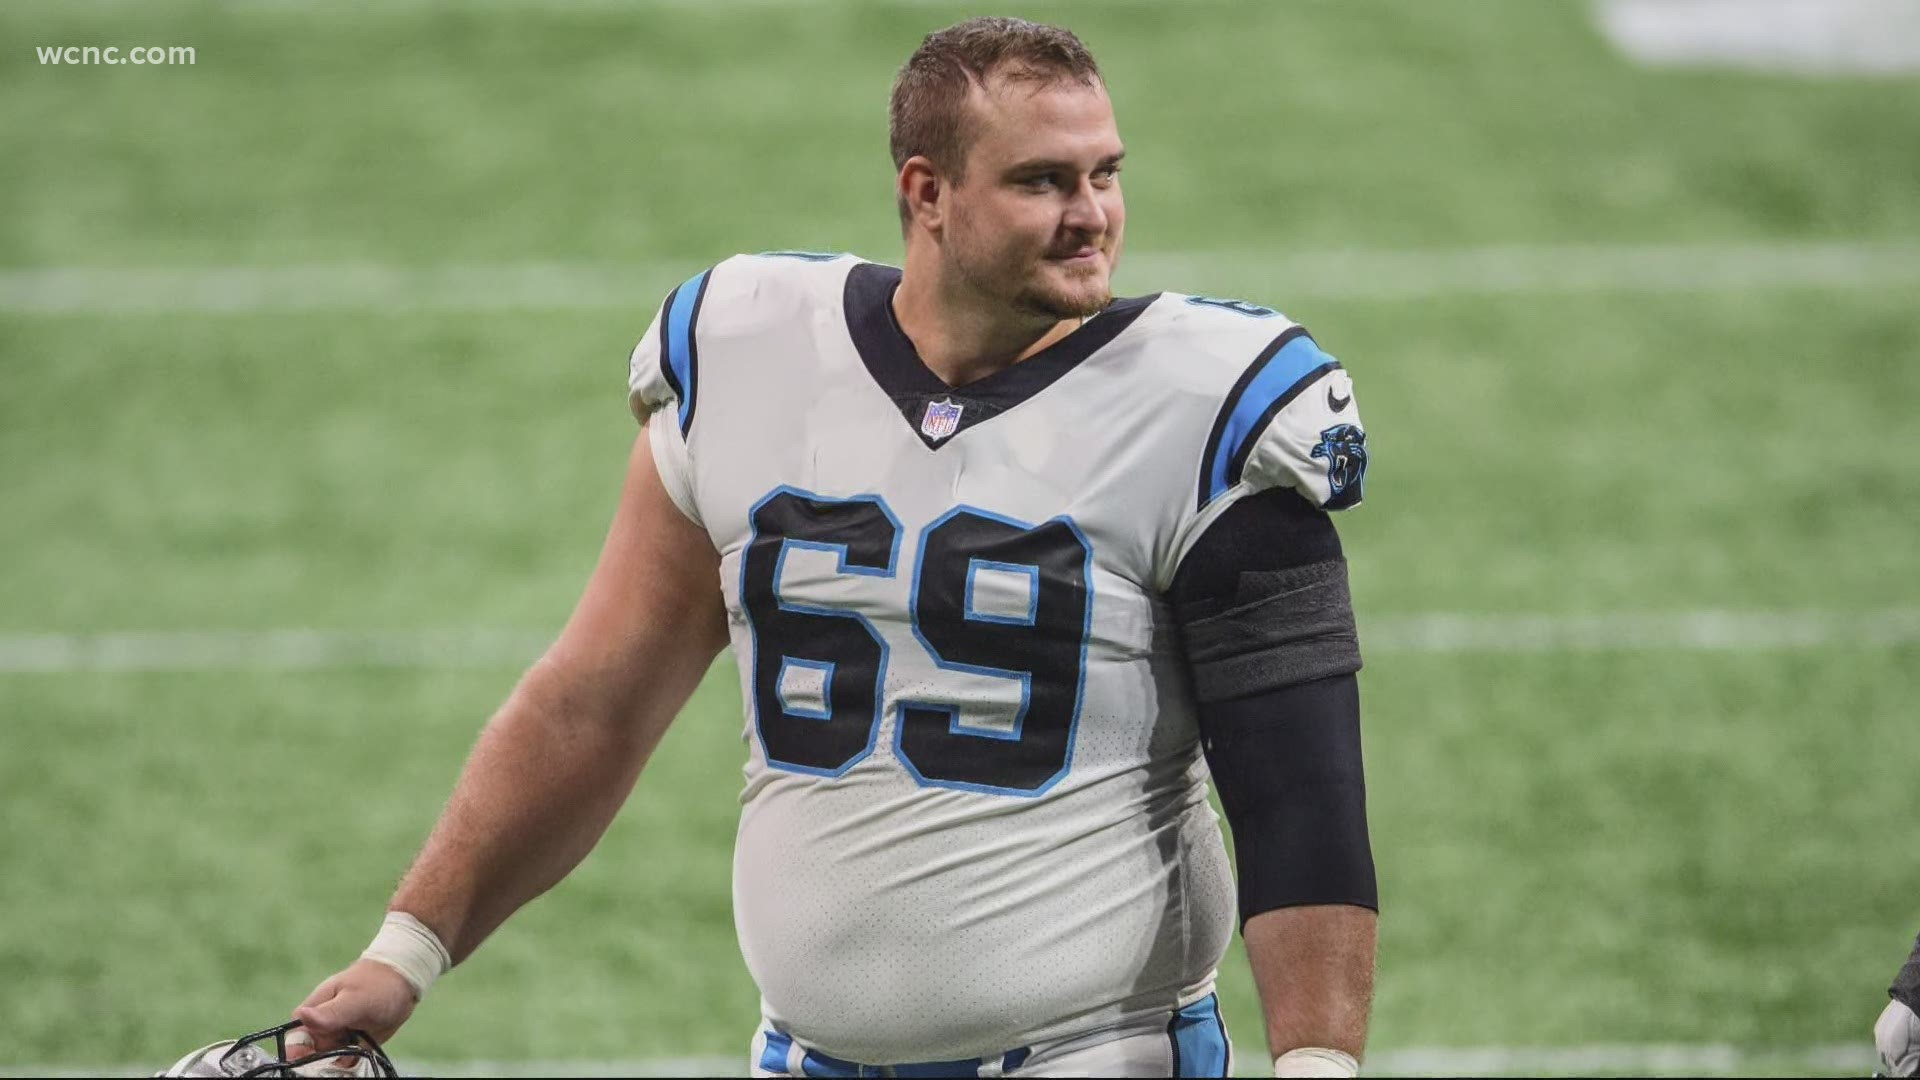 Carolina Panthers Lineman Tyler Larsen Tests Positive For Covid Wcnc Com